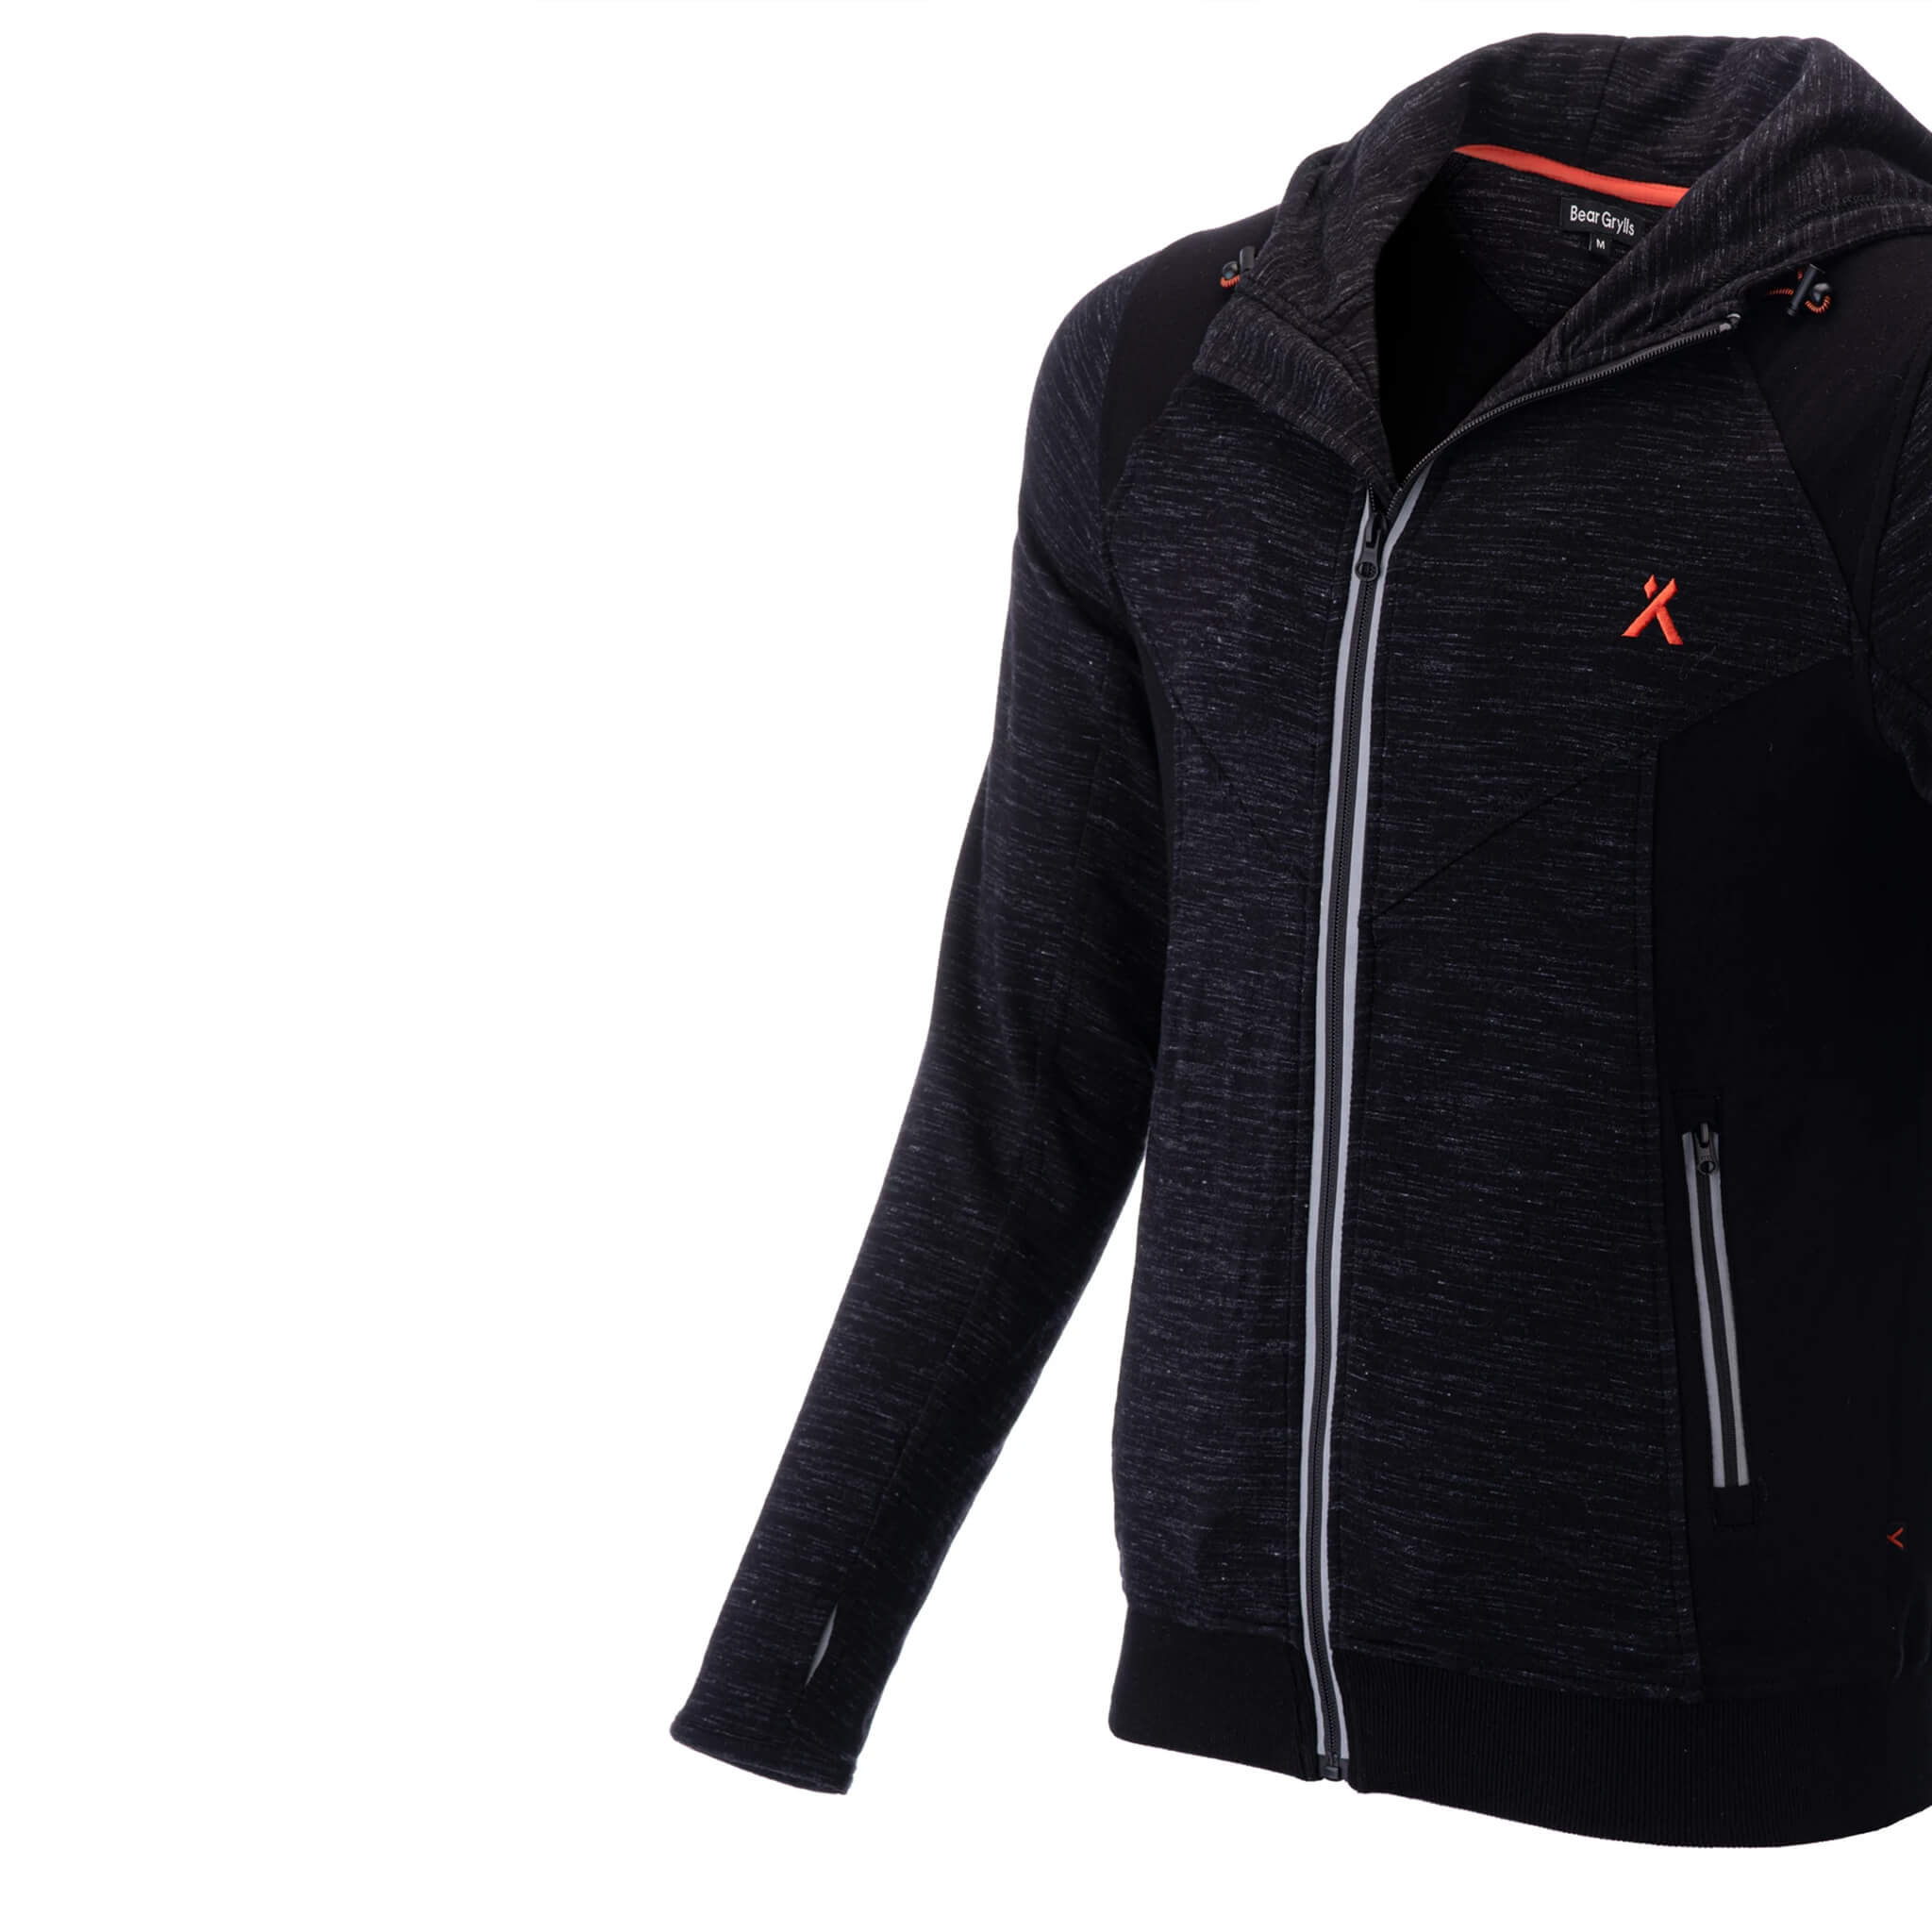 bear Grylls Eco friendly clothing range made from bamboo fibres